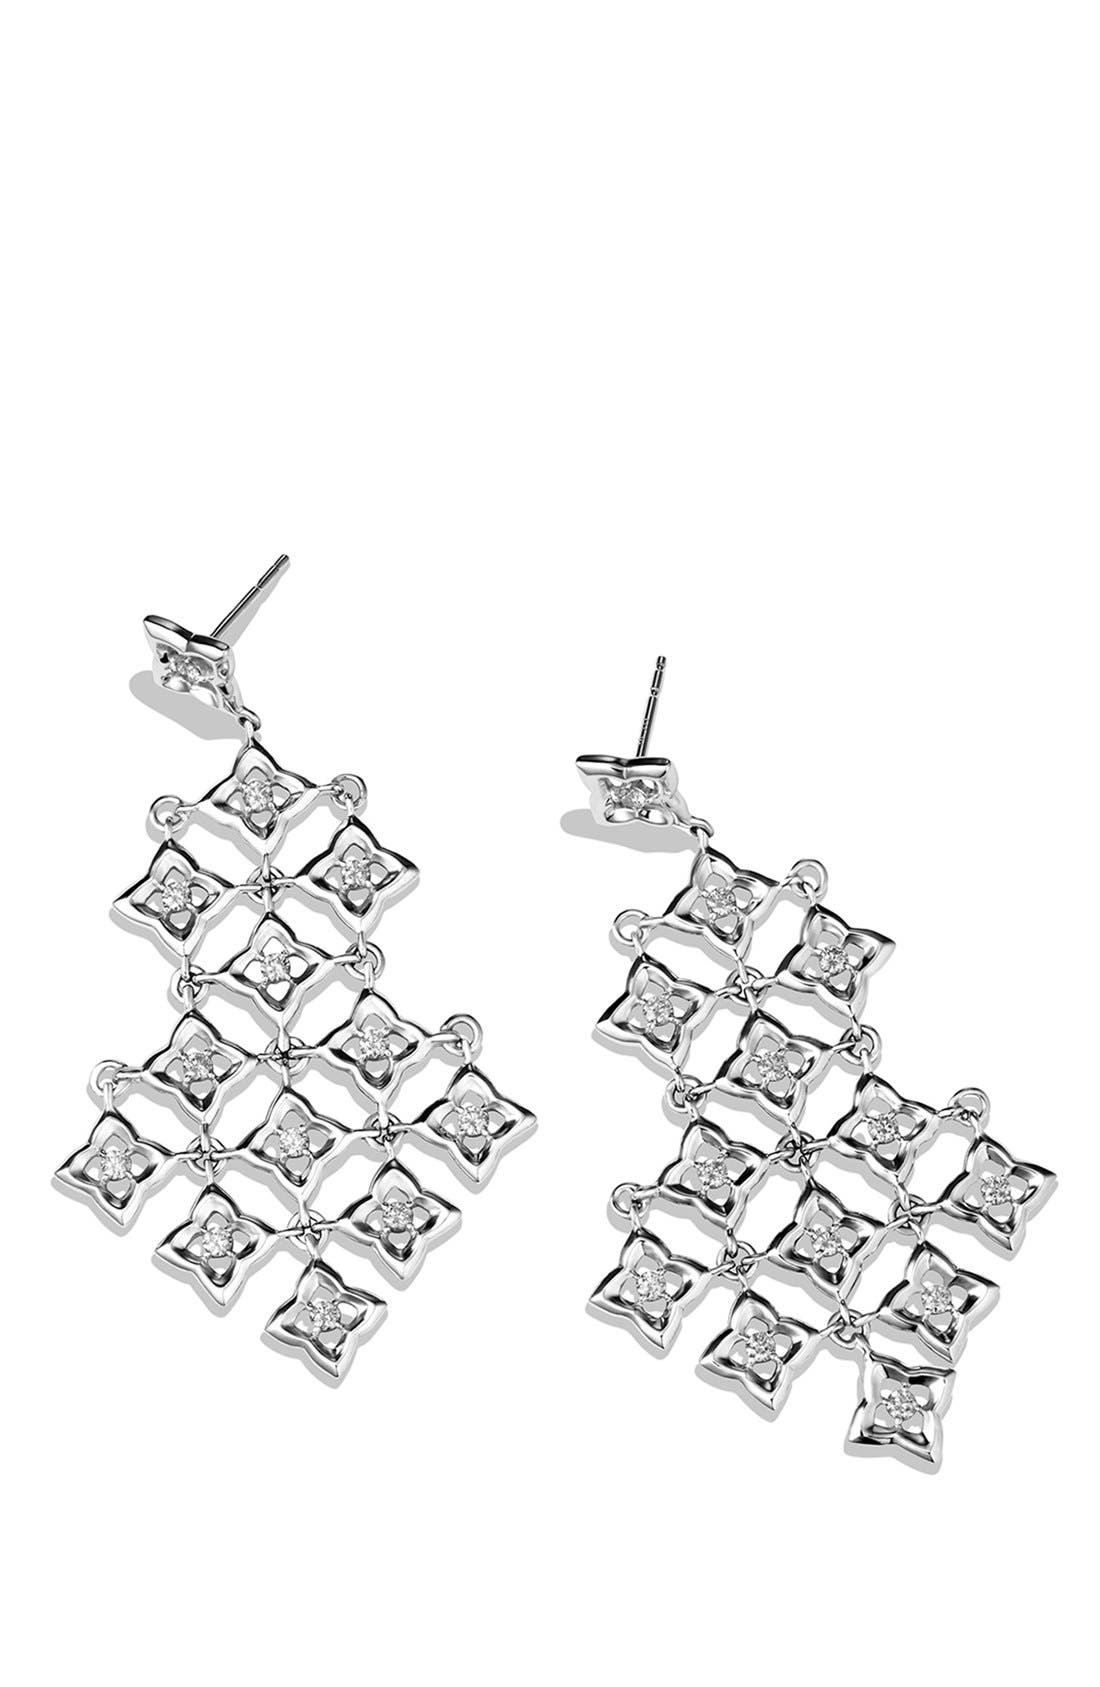 Alternate Image 2  - David Yurman 'Quatrefoil' Chandelier Earrings with Diamonds